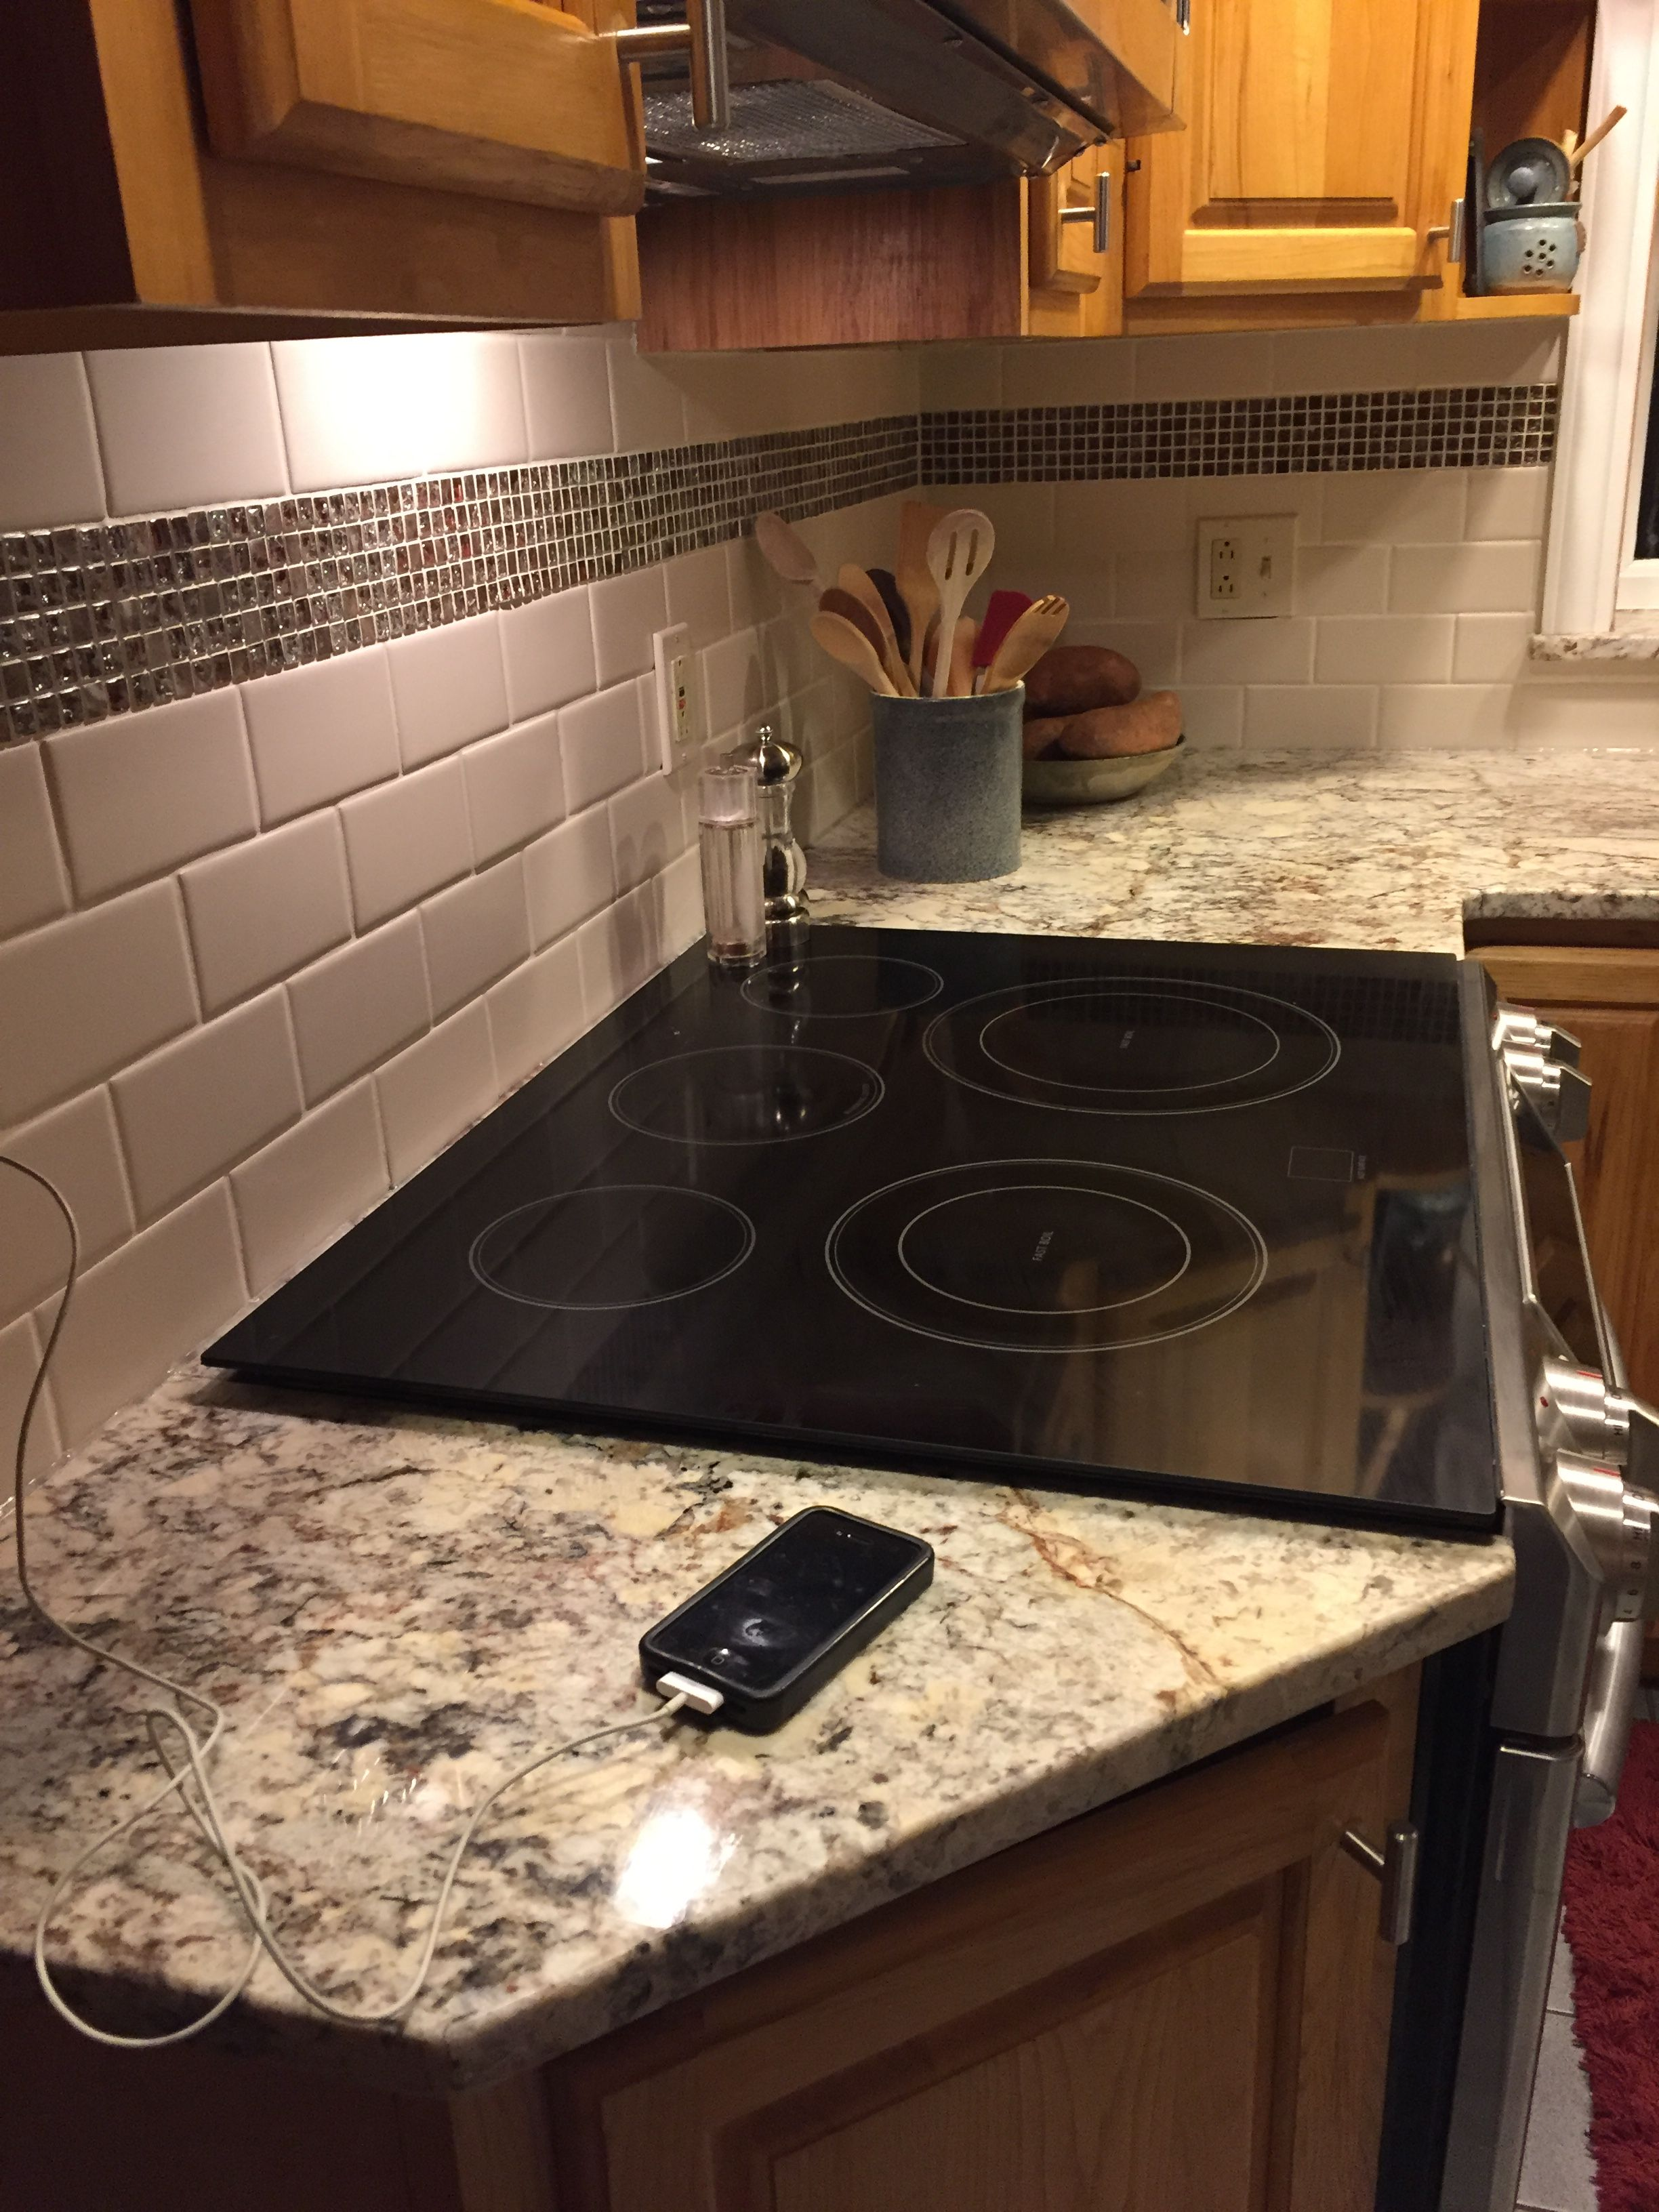 - Sienna Bordeaux Granite, Almond Subway Tile With Icy Red Mini